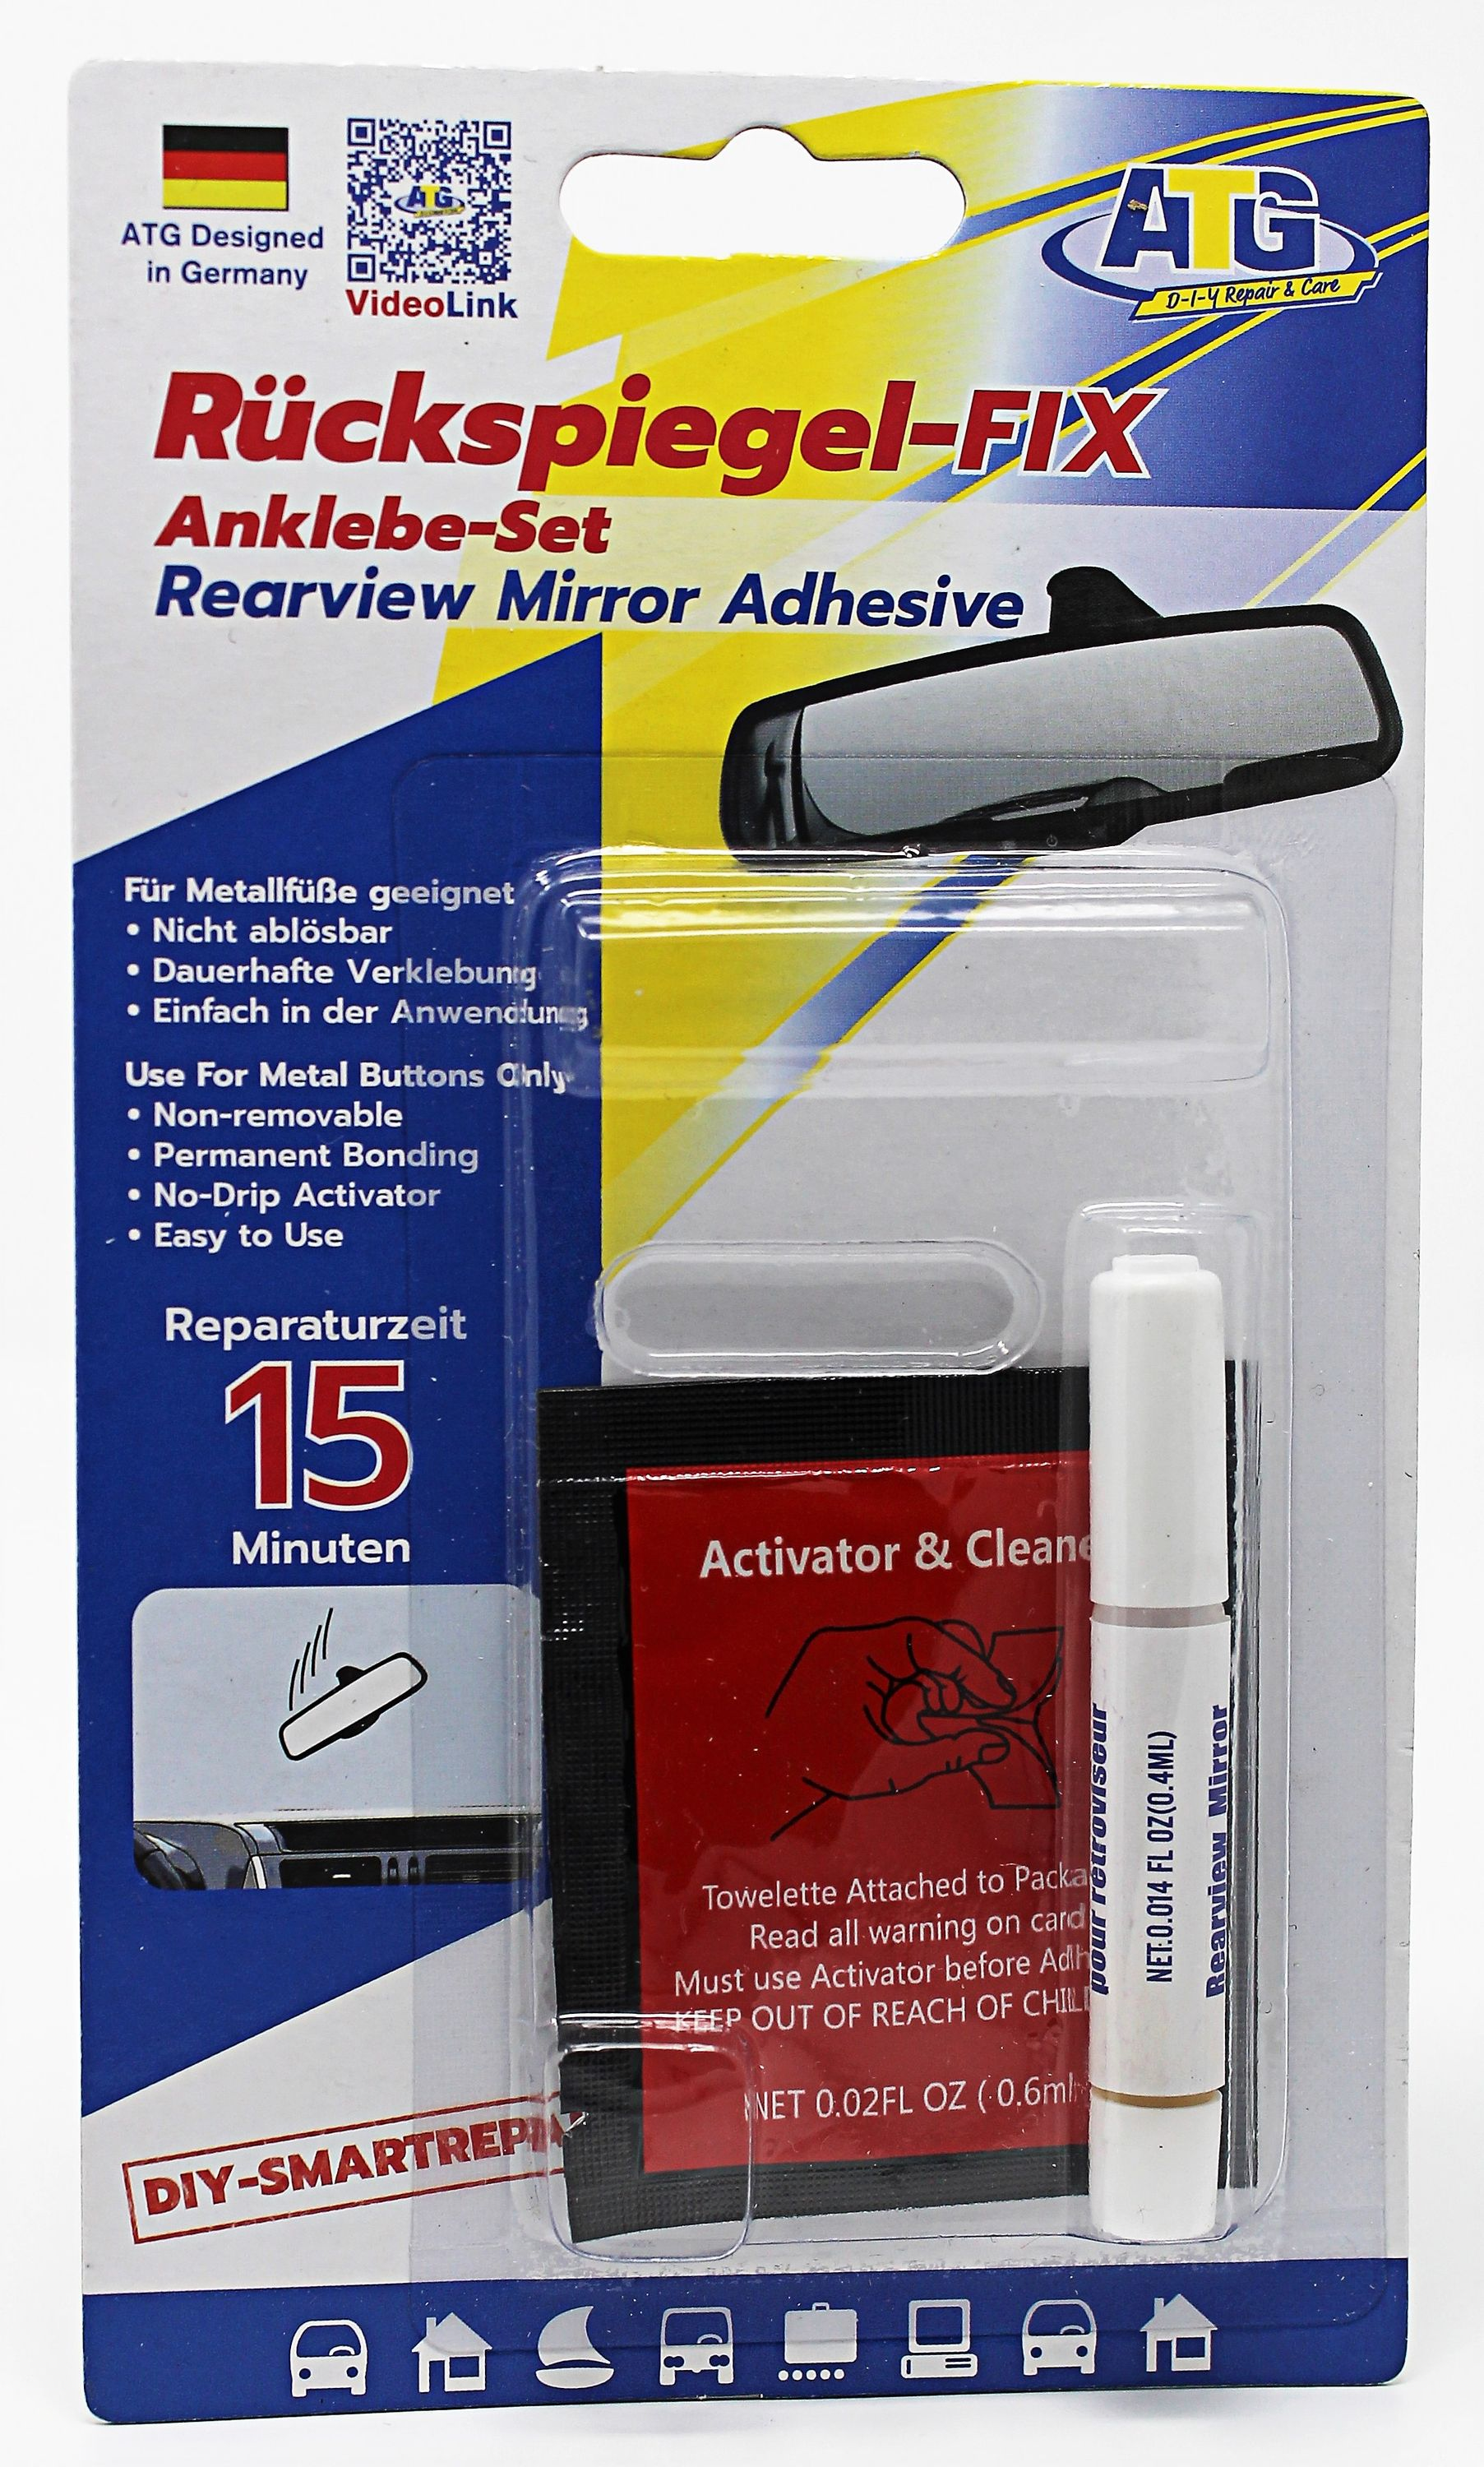 atg rear mirror fix adhesive set for attaching car interior mirror to the windshield incl. Black Bedroom Furniture Sets. Home Design Ideas